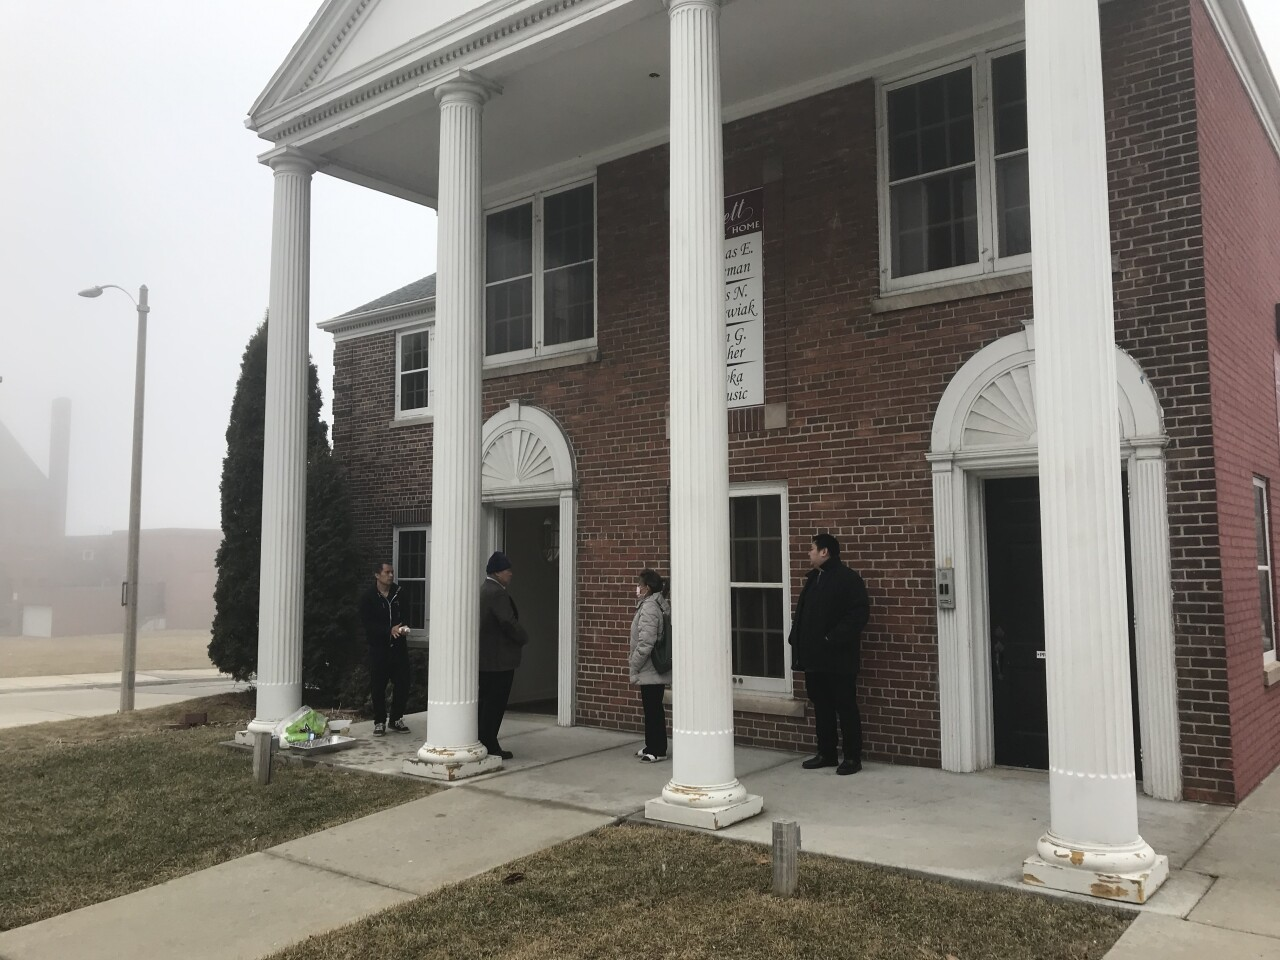 Due to the state's ban on indoor public gatherings of 10 or more people, friends and family are forced to wait outside the Brett Funeral Home in Milwaukee for their turn to see their loved one.